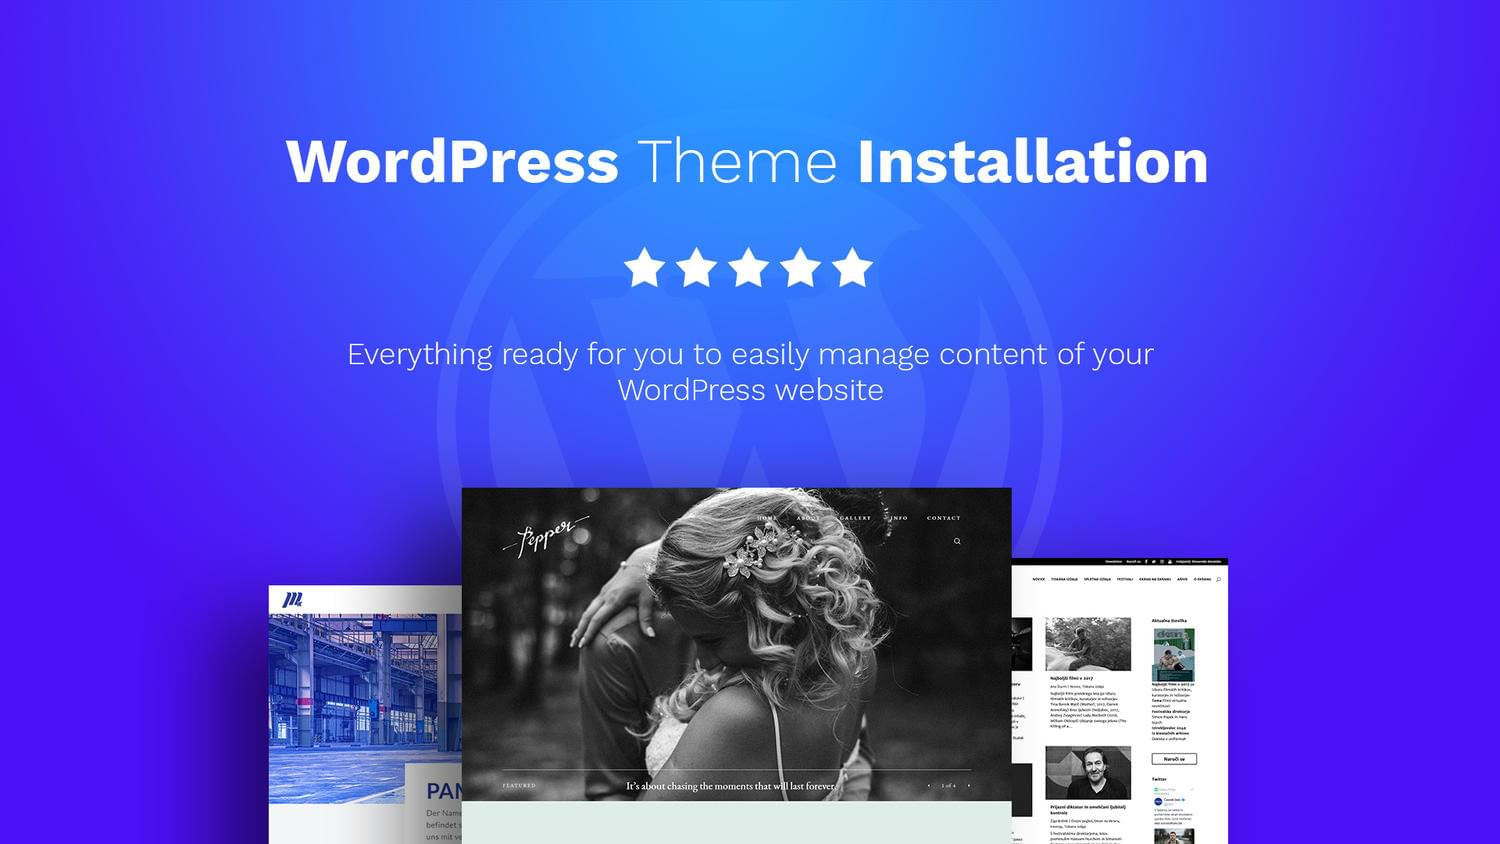 WordPress Theme Installation (+ Demo and Content Setup) by OliverMarcetic - 111941